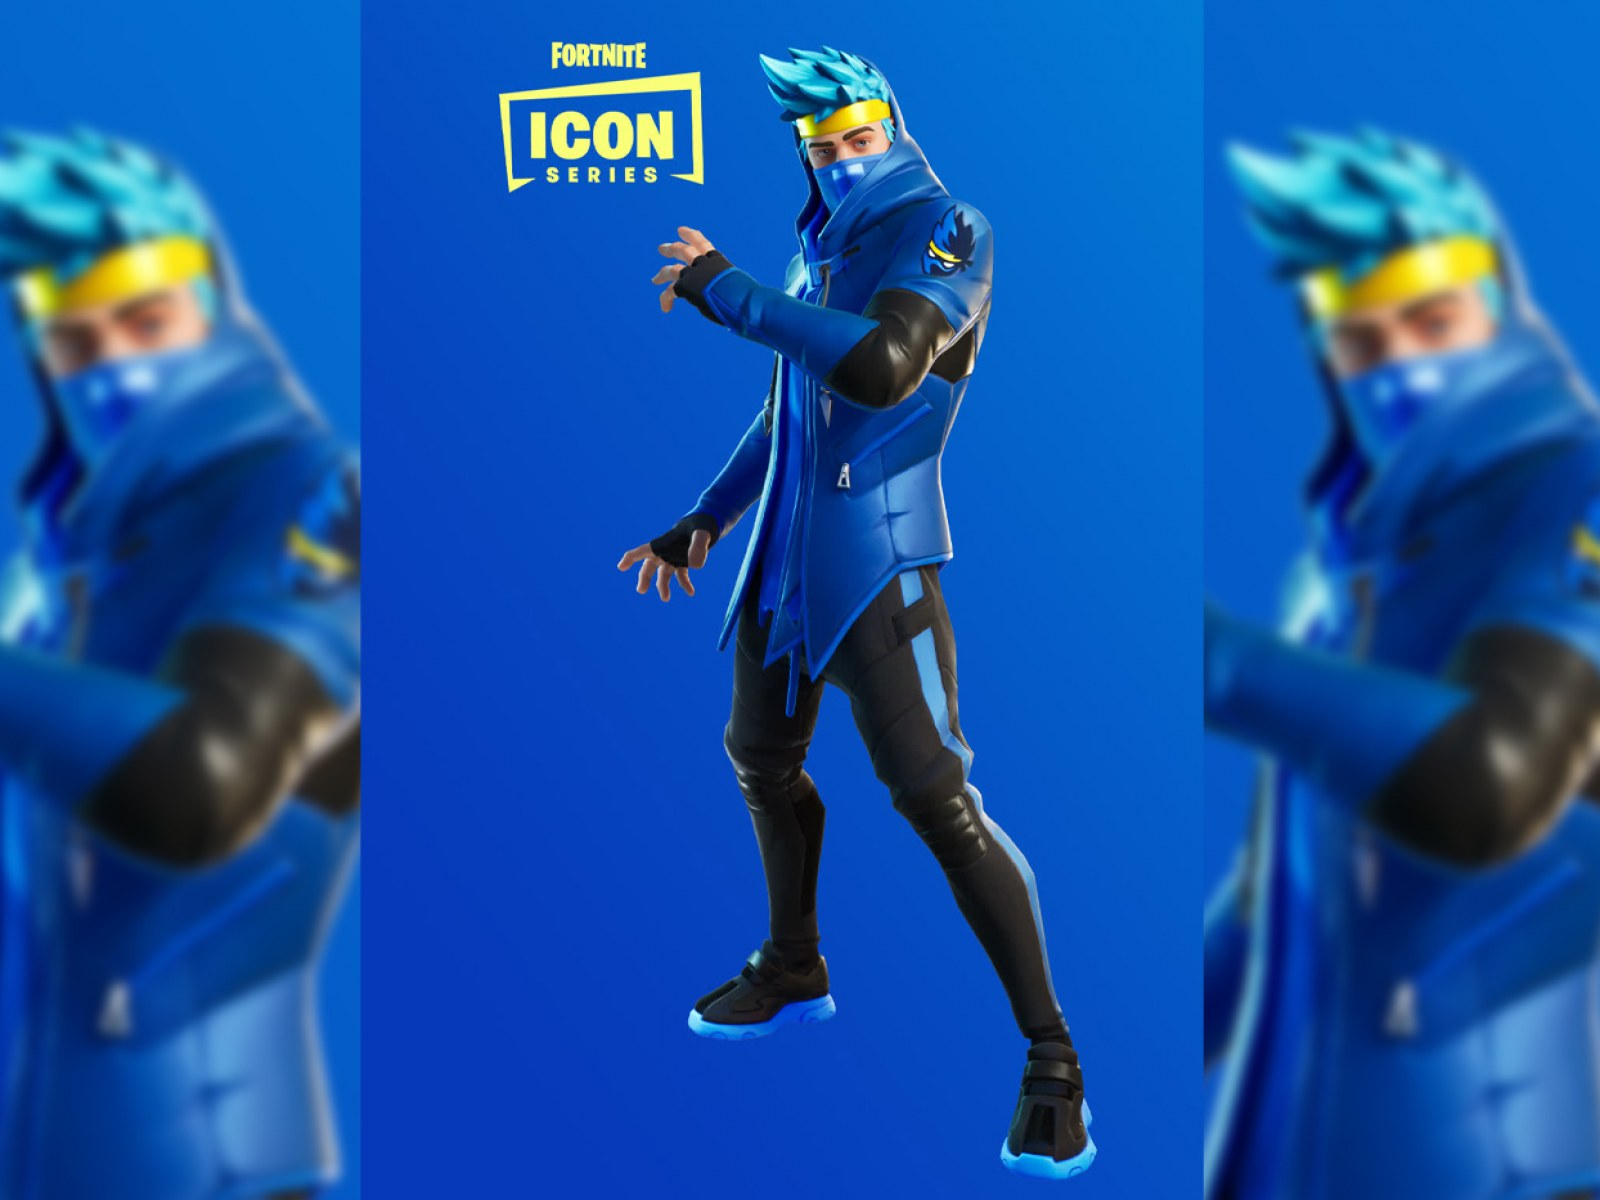 Fortnite Ninja Skin Revealed How To Get The Icon Series Outfit In Item Shop